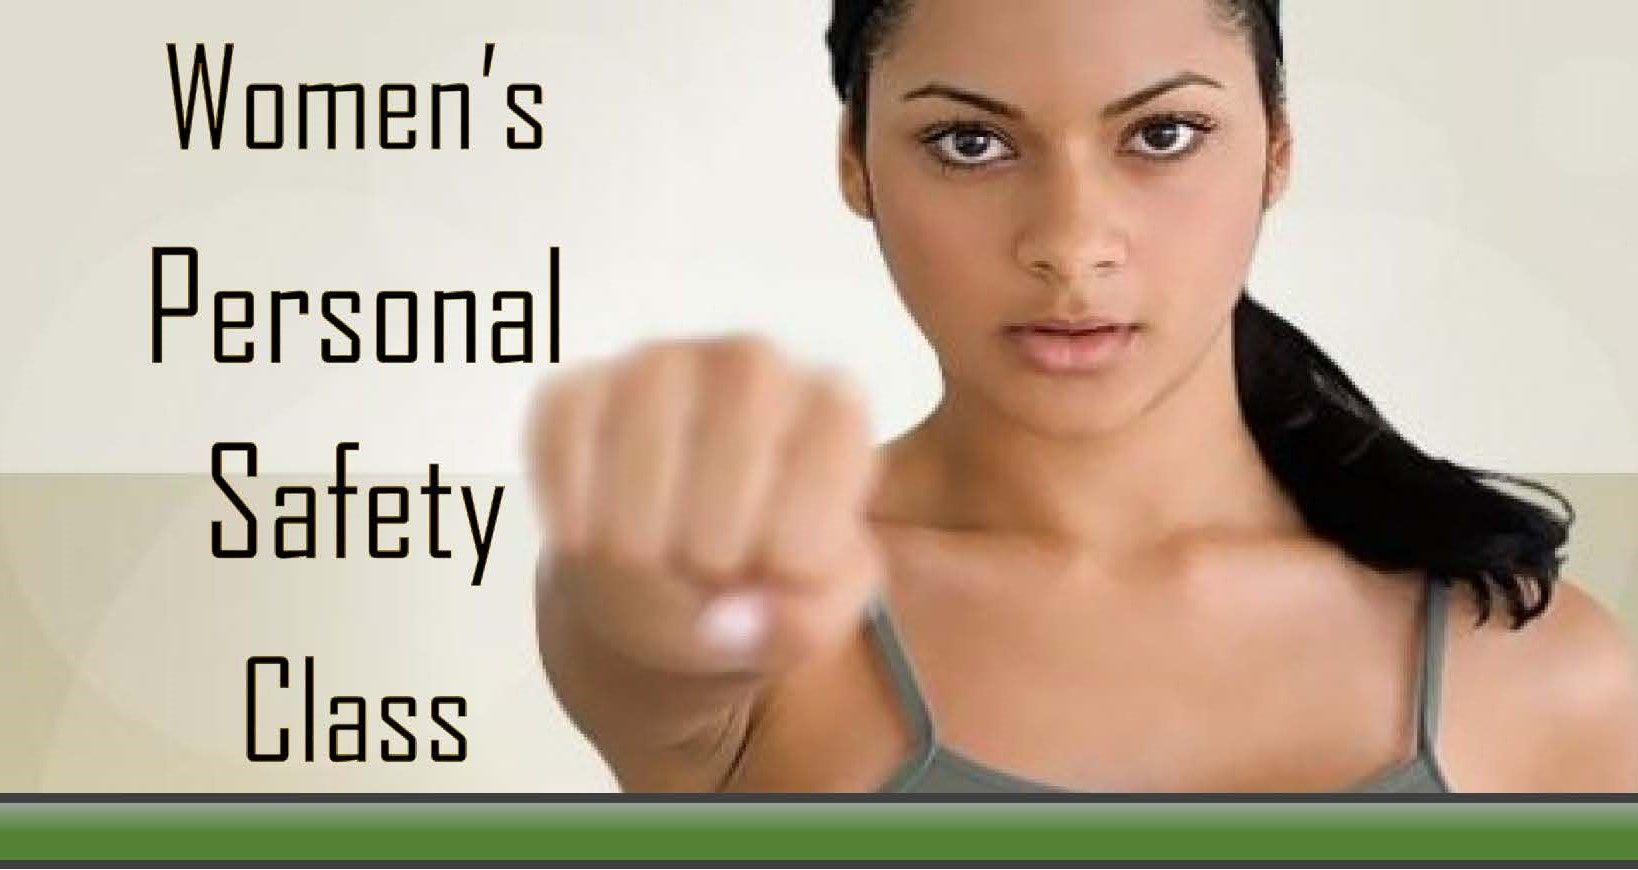 Women's Personal Safety Class